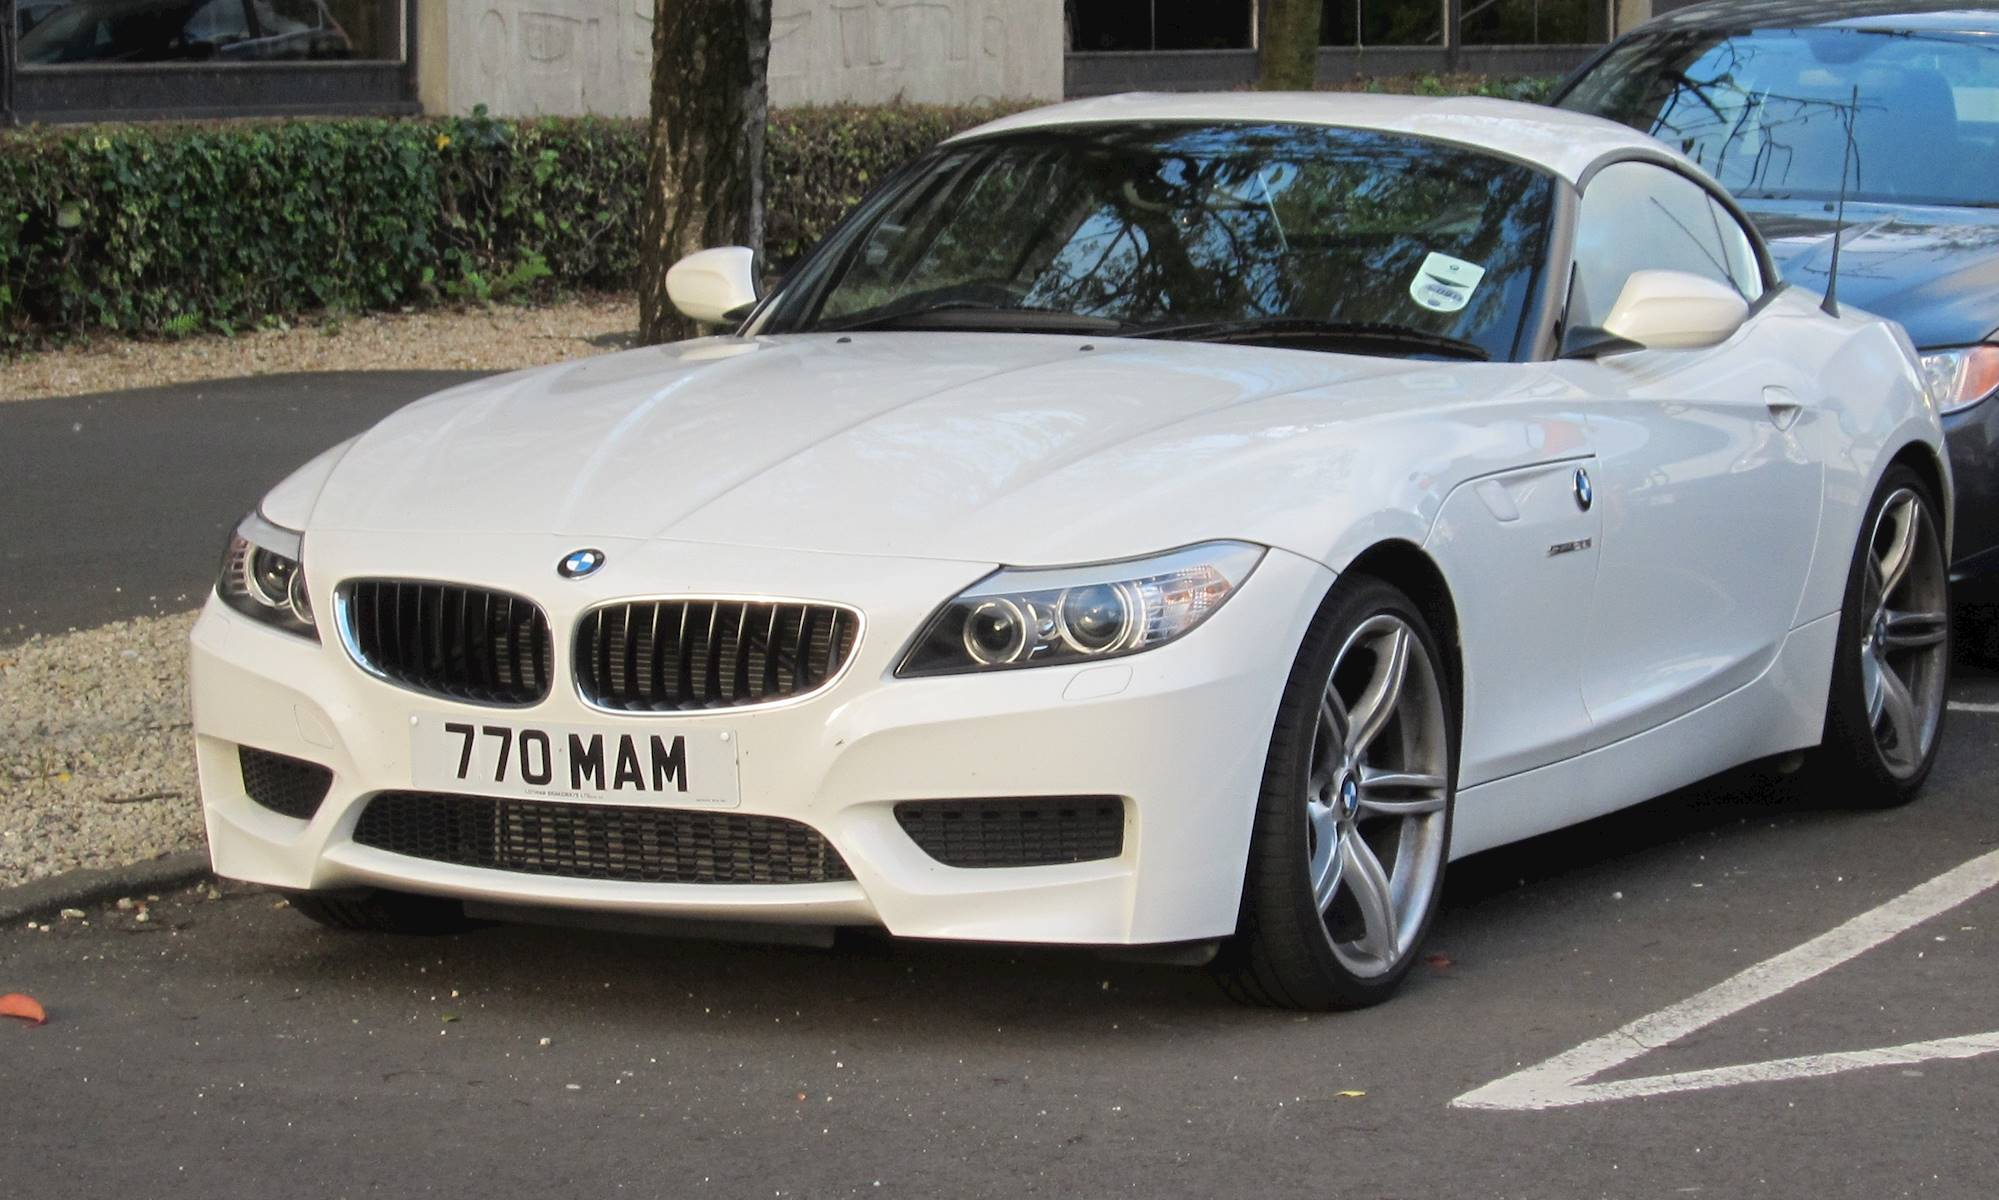 2013 Bmw Z4 Sdrive35i Convertible 3 0l Twin Turbo Manual